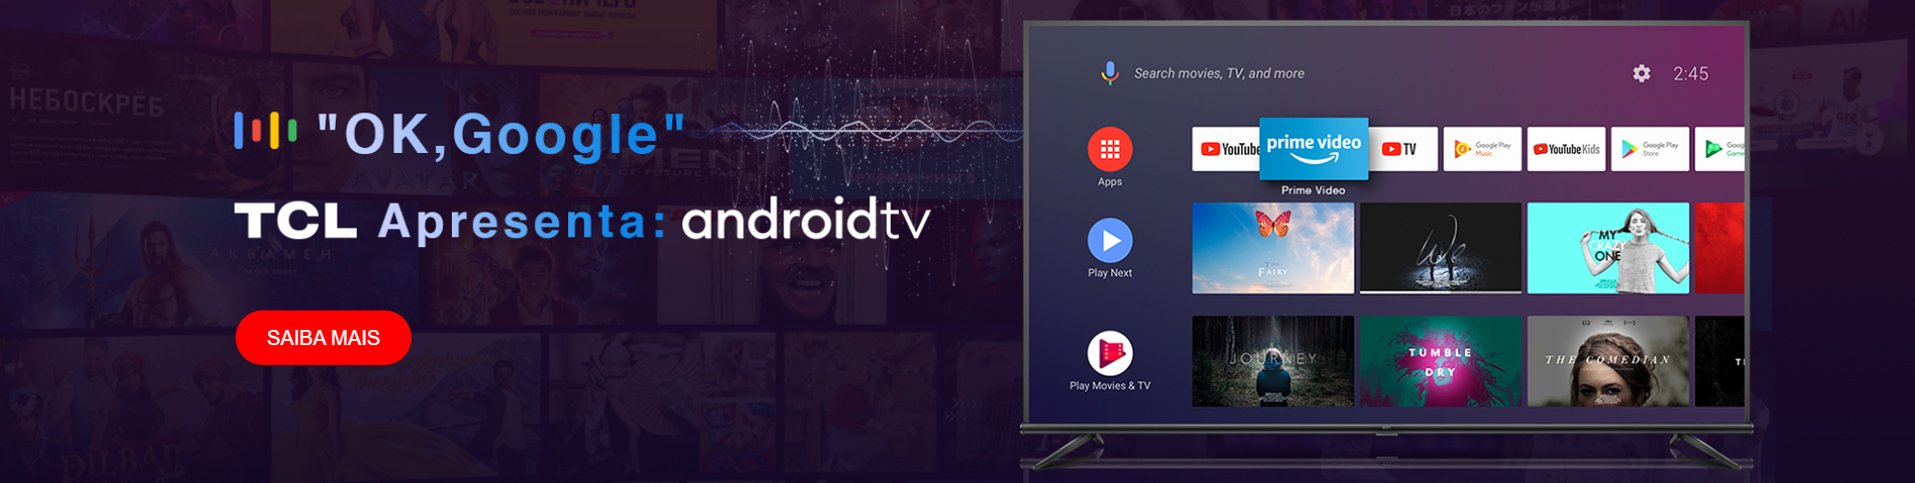 TCL ANDROID TV